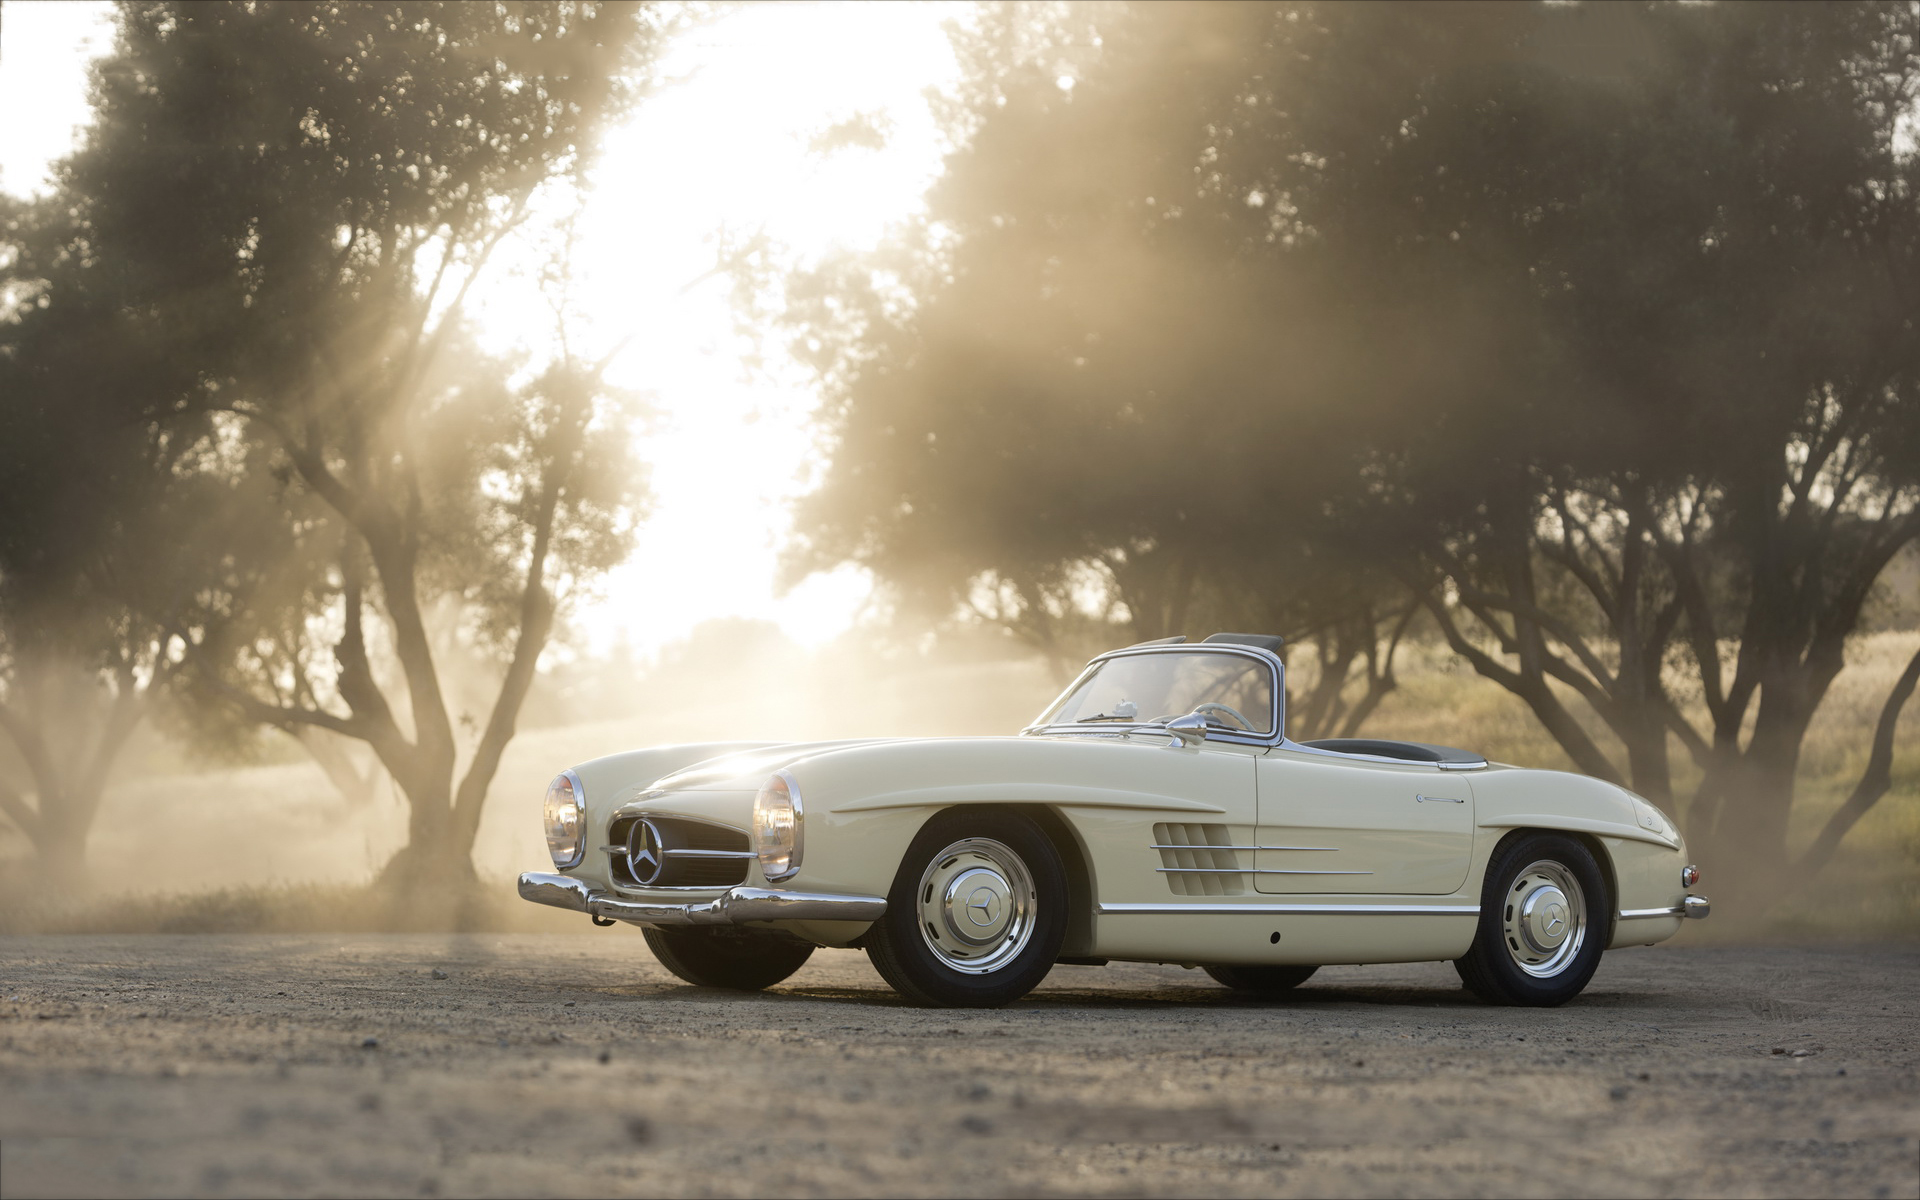 Merecedes 300sl classic hd cars 4k wallpapers images for Mercedes benz classic cars